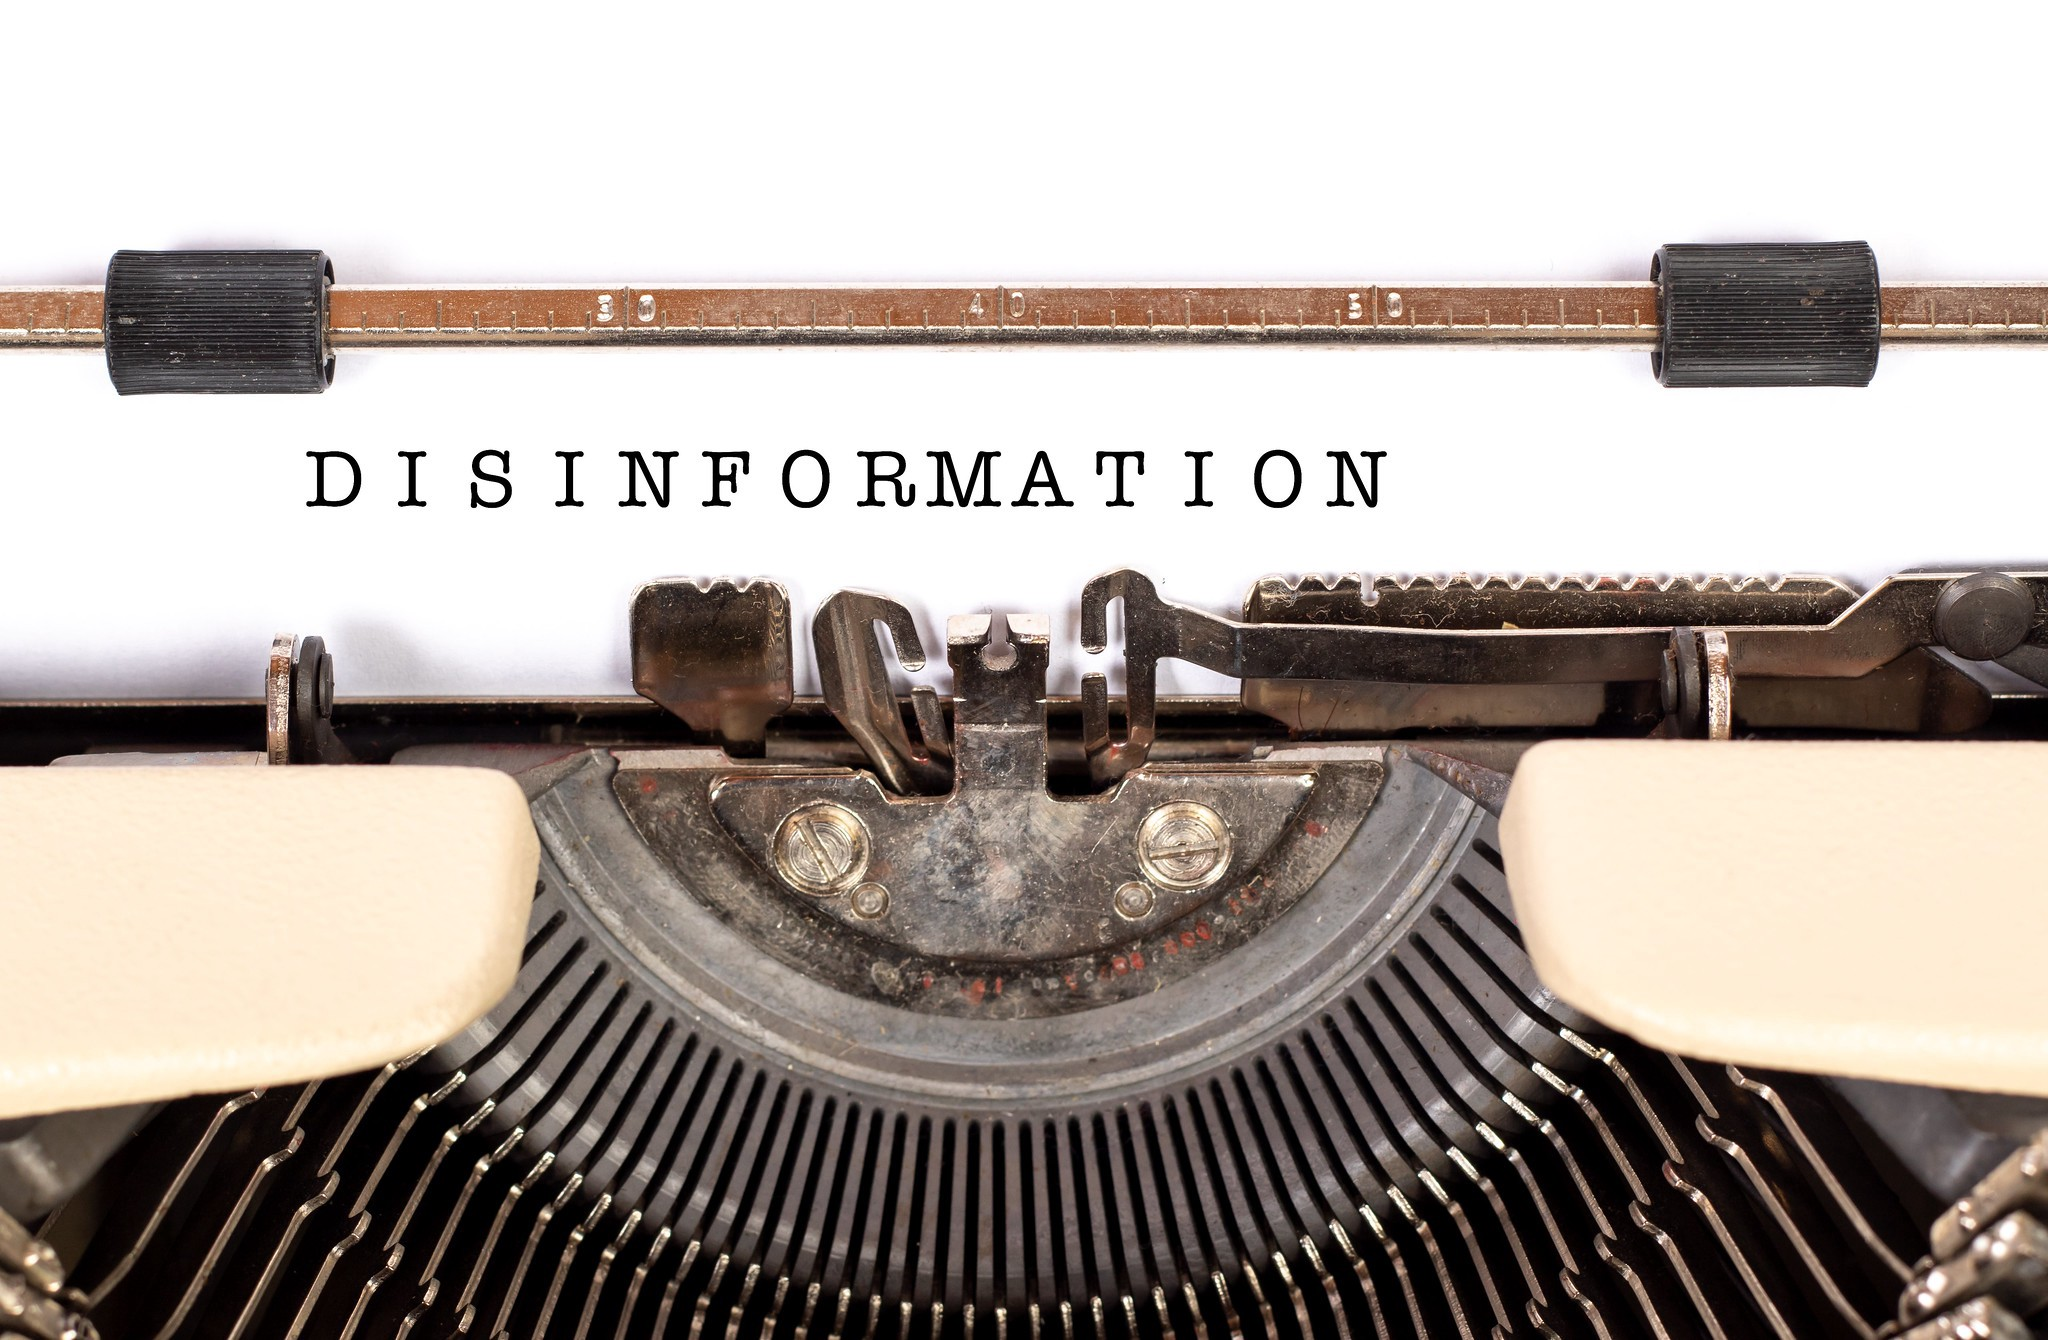 An antique typewriter with a piece of paper that says disinformation. Credit: Marco Verch/trendingtopics